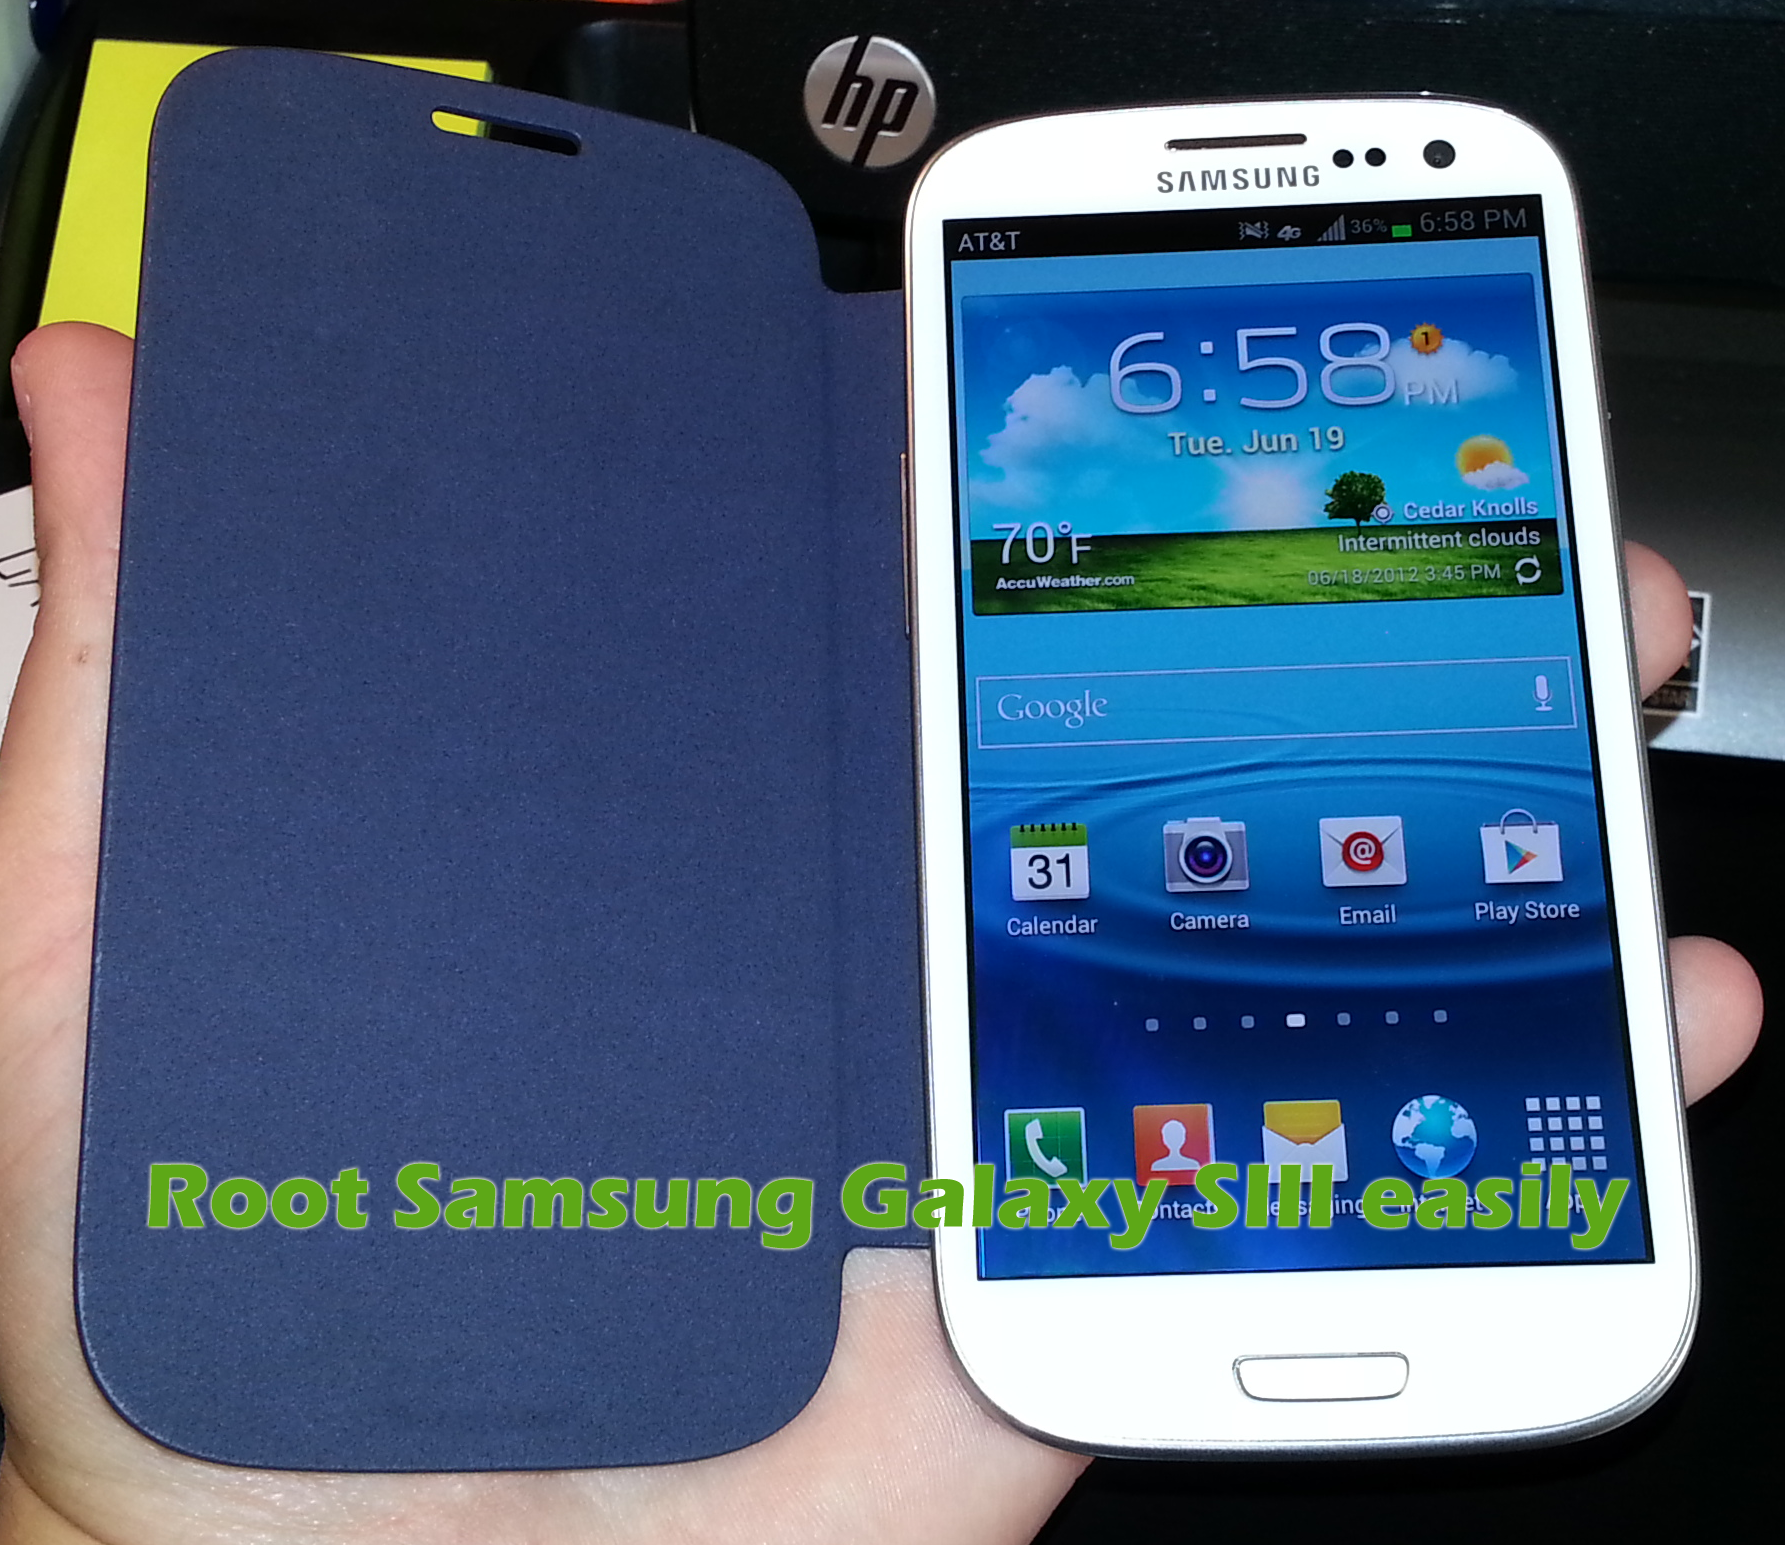 How to root unroot Samsung1785